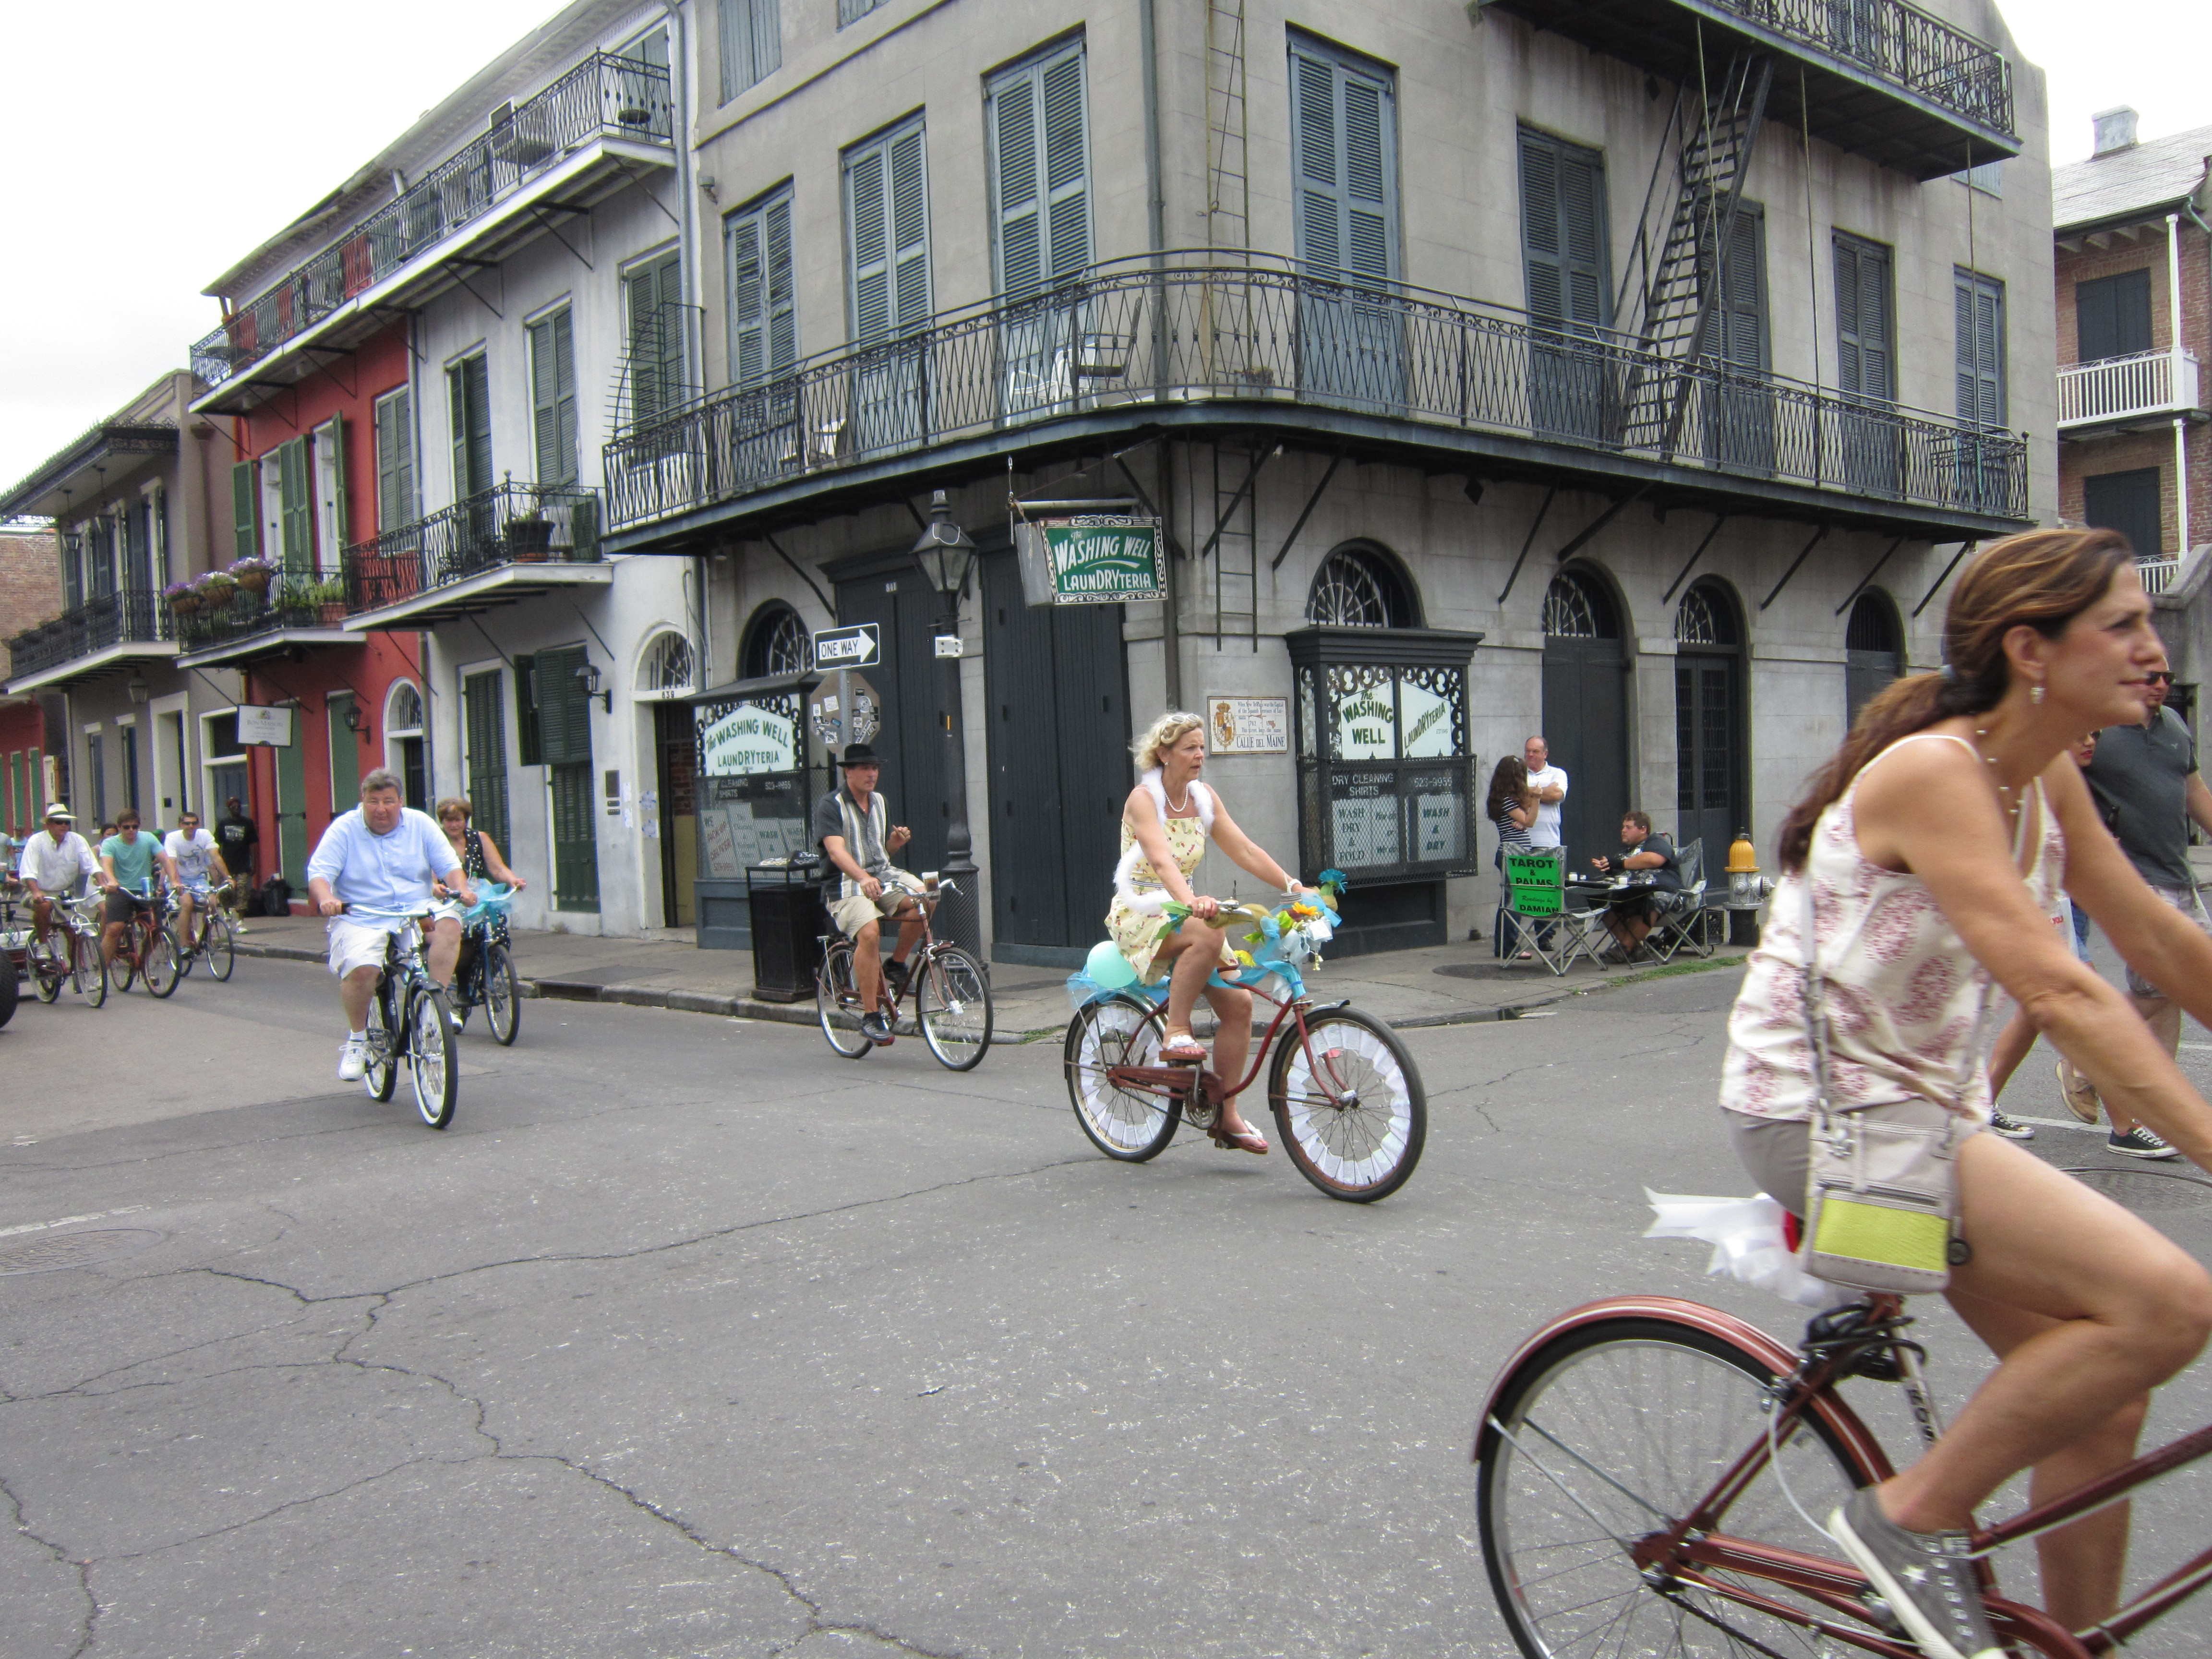 New orleans wikimedia